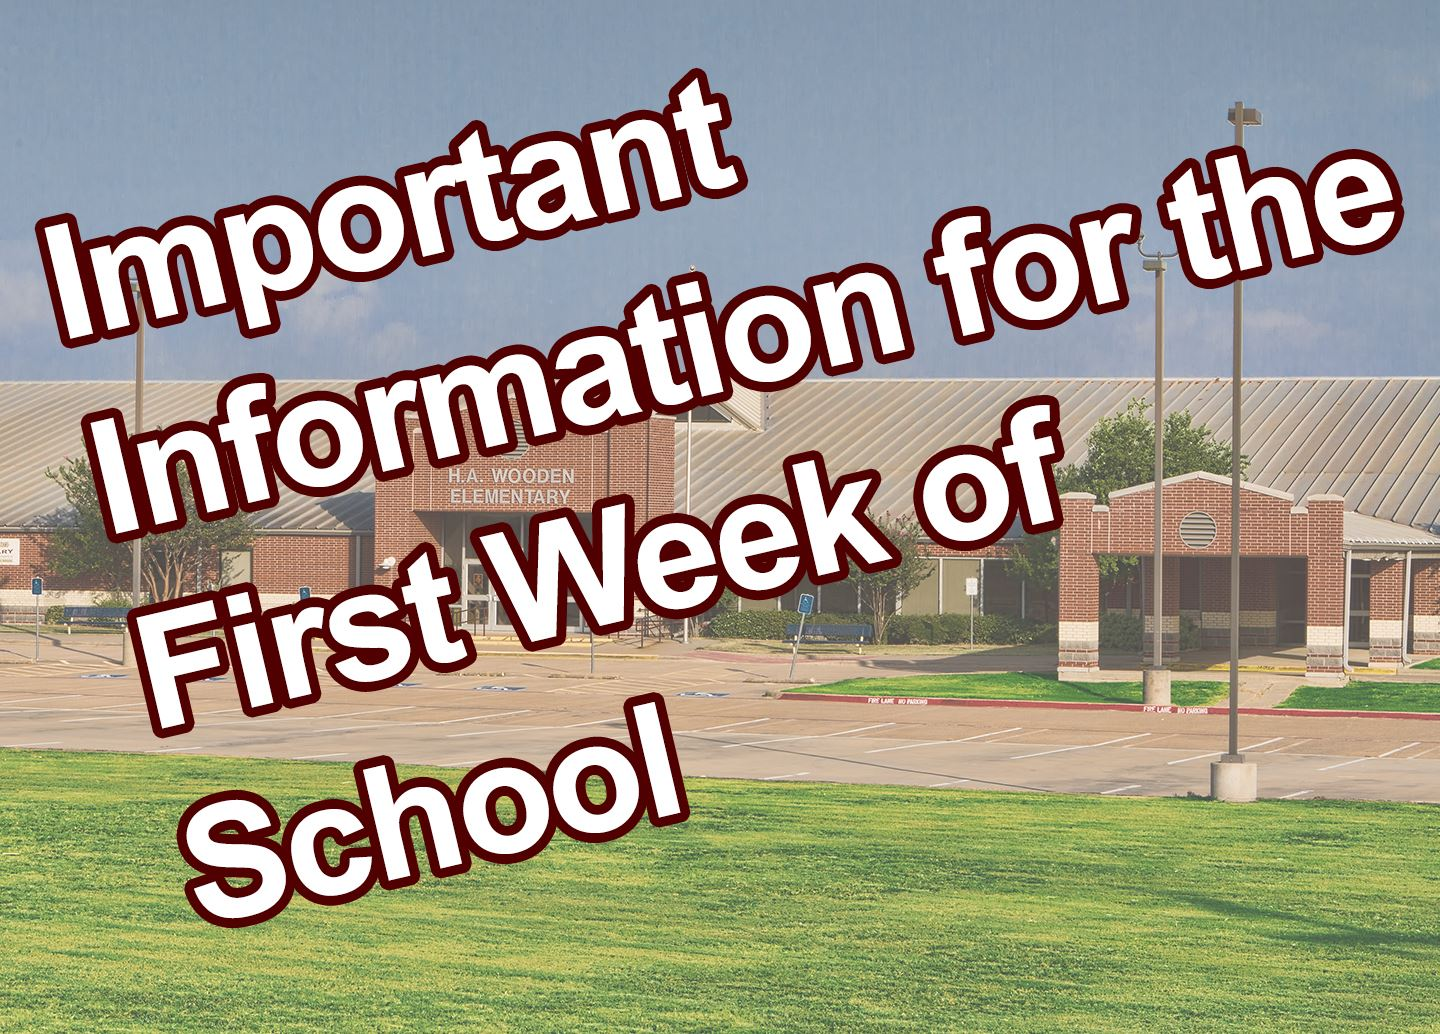 Important Information for the first week of school at Wooden Elementary